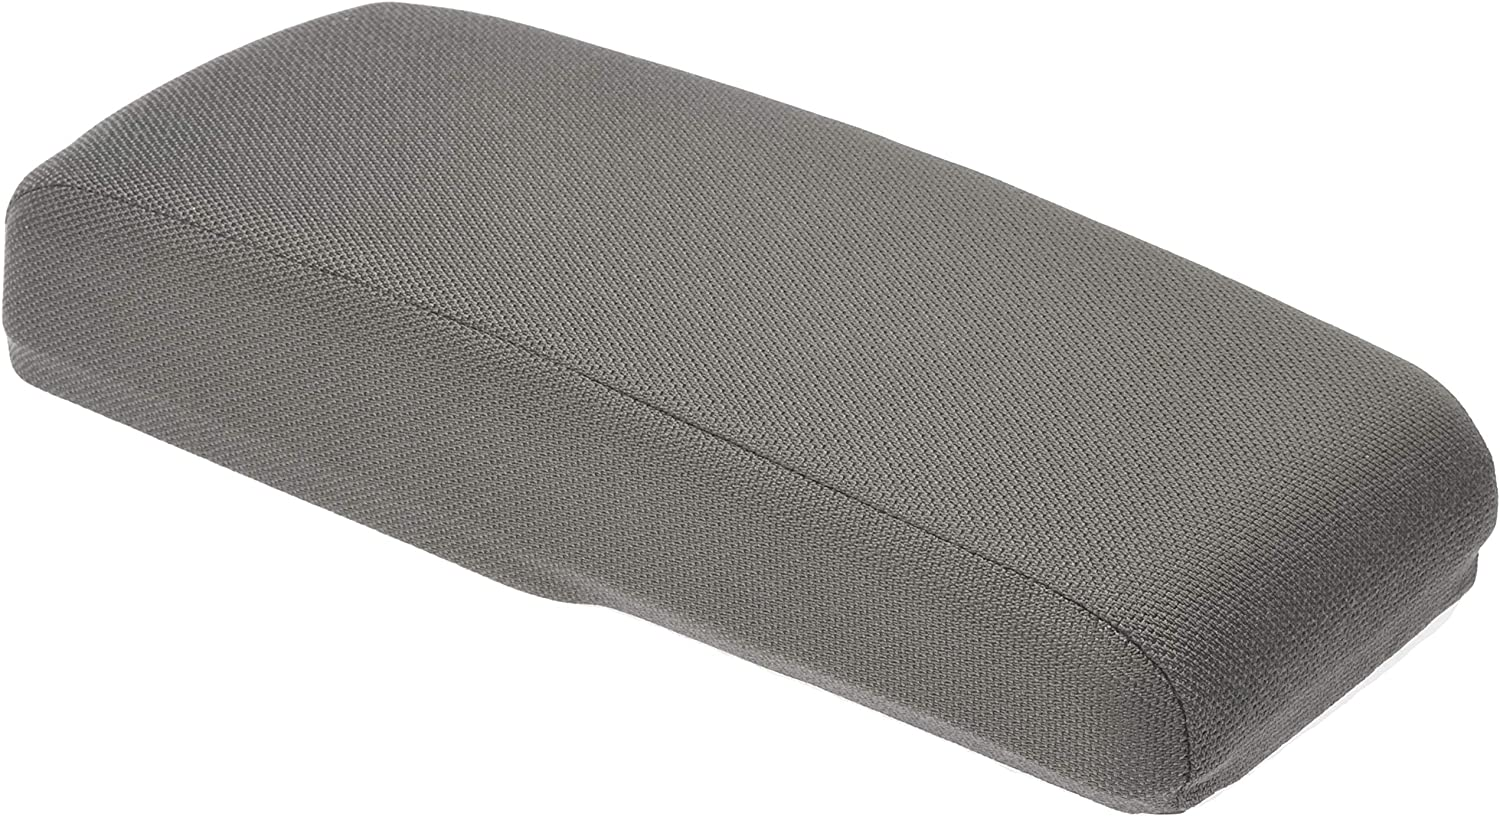 Dorman 925-082 Console Lid for Select Chevrolet / GMC Models